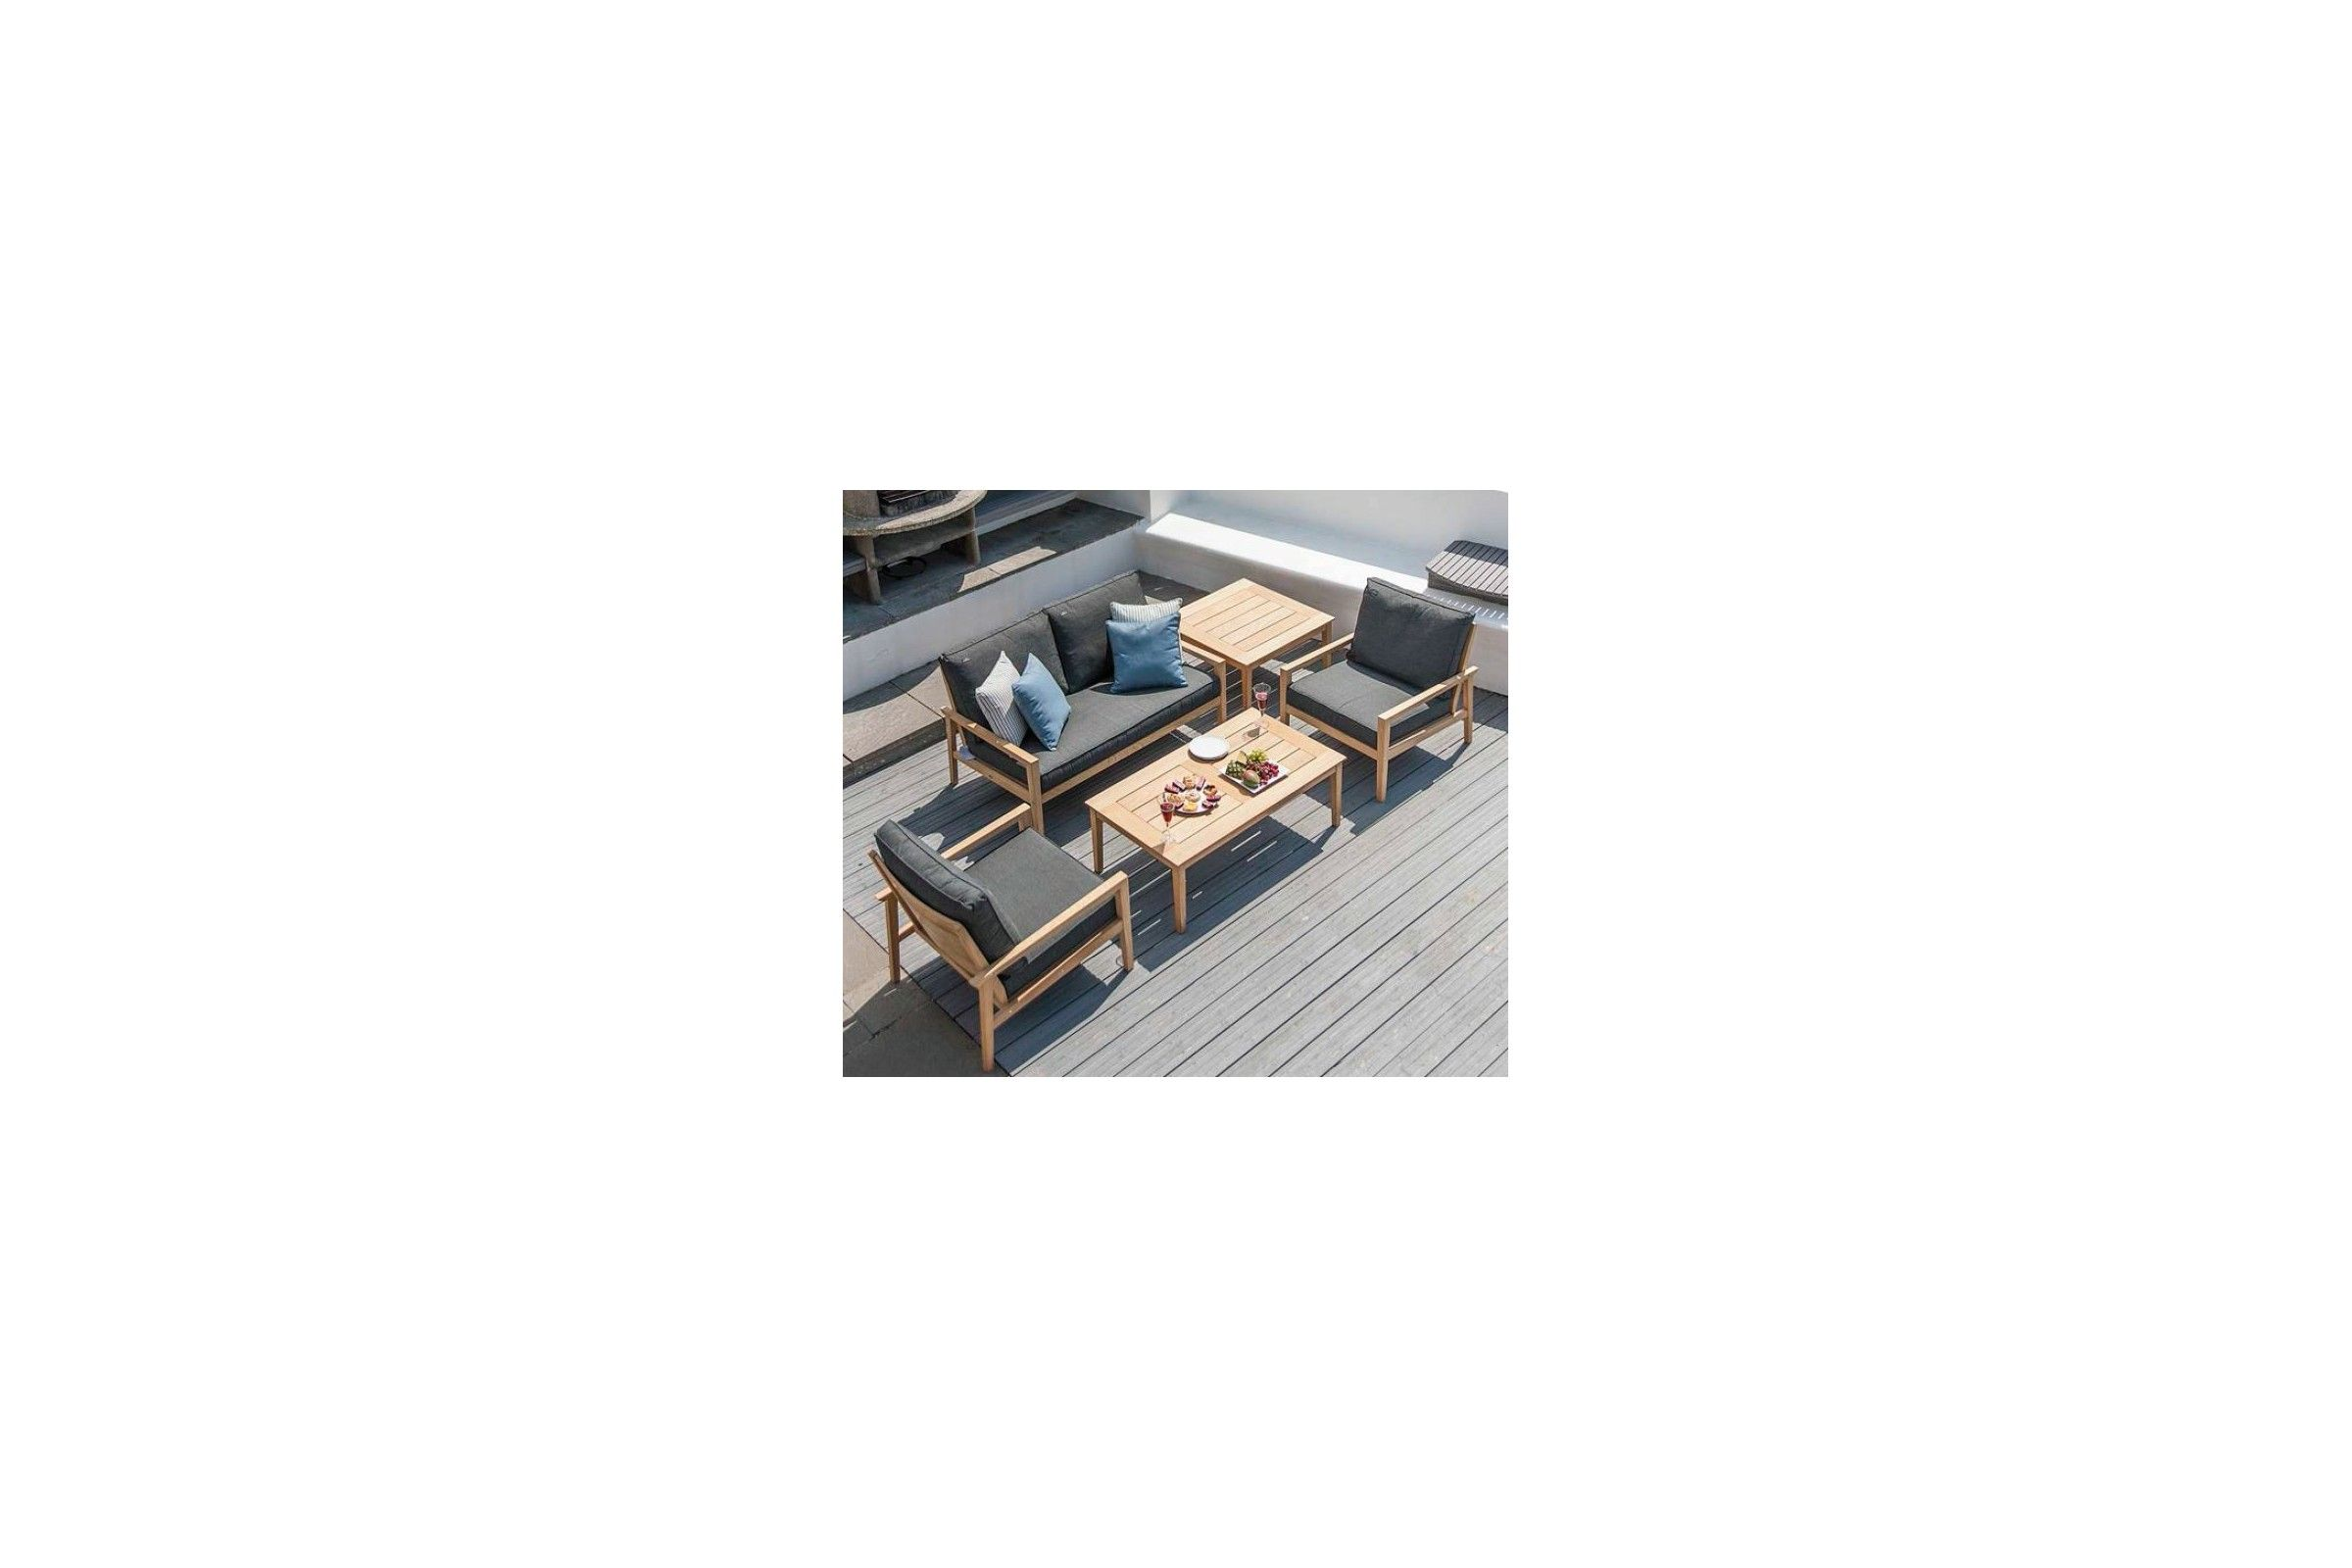 canap salon de jardin en bois avec coussin gris fonc. Black Bedroom Furniture Sets. Home Design Ideas